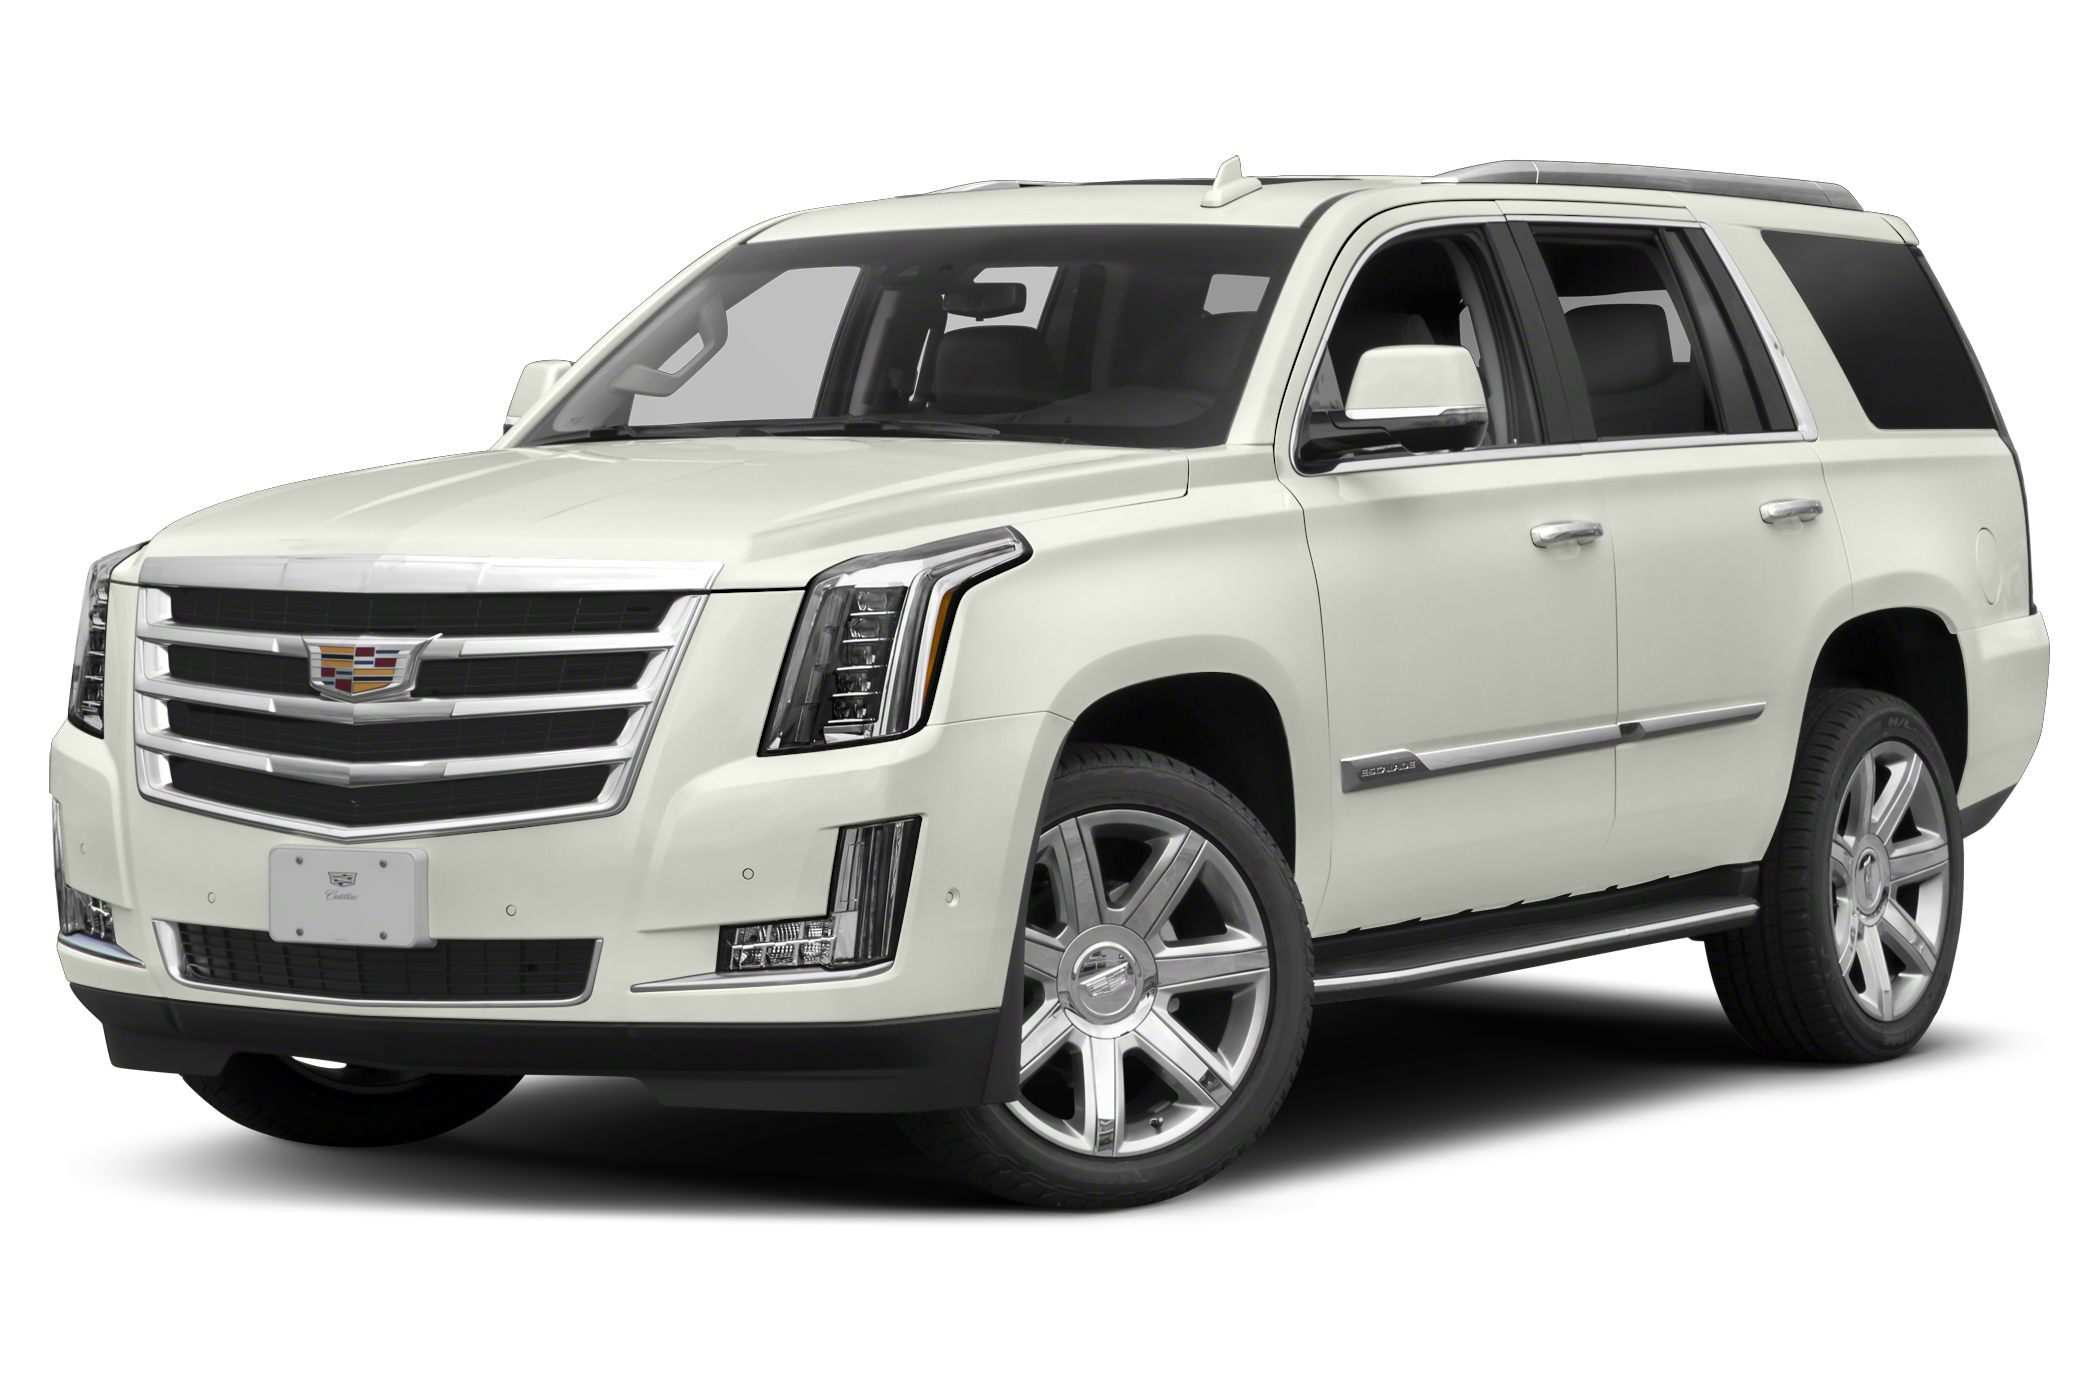 54 Great The Cadillac Escalade 2019 Platinum Exterior Rumors for The Cadillac Escalade 2019 Platinum Exterior